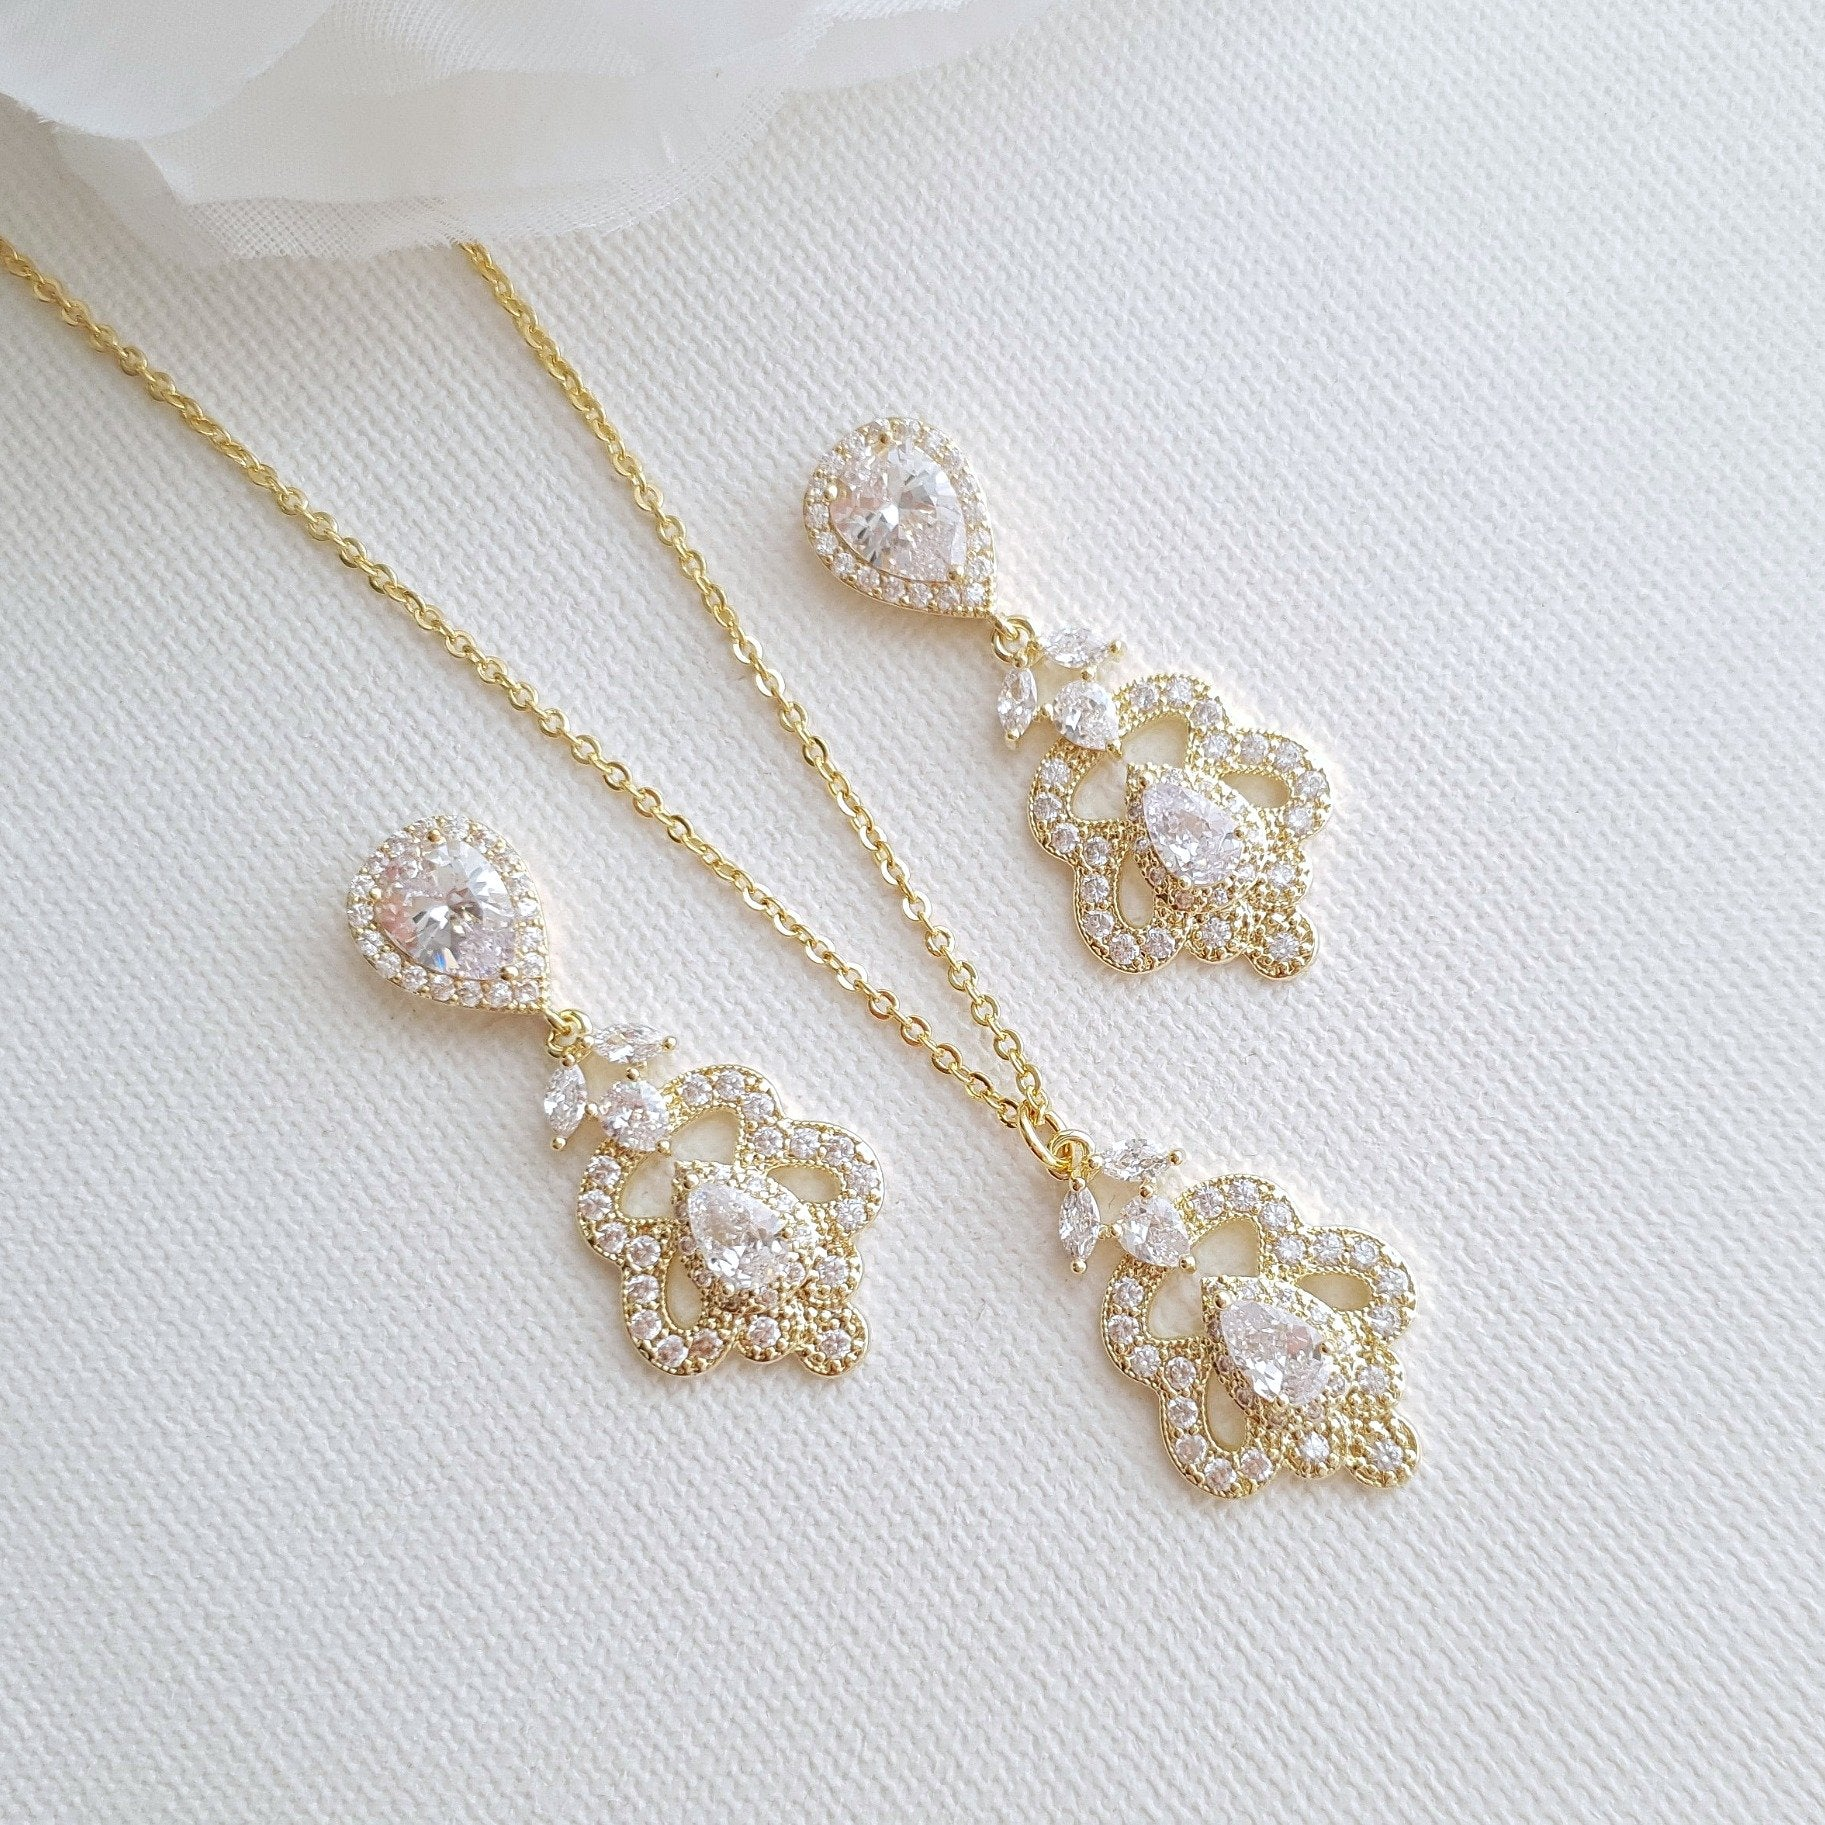 Vintage Gold Jewelry Set for Wedding- Norma - PoetryDesigns